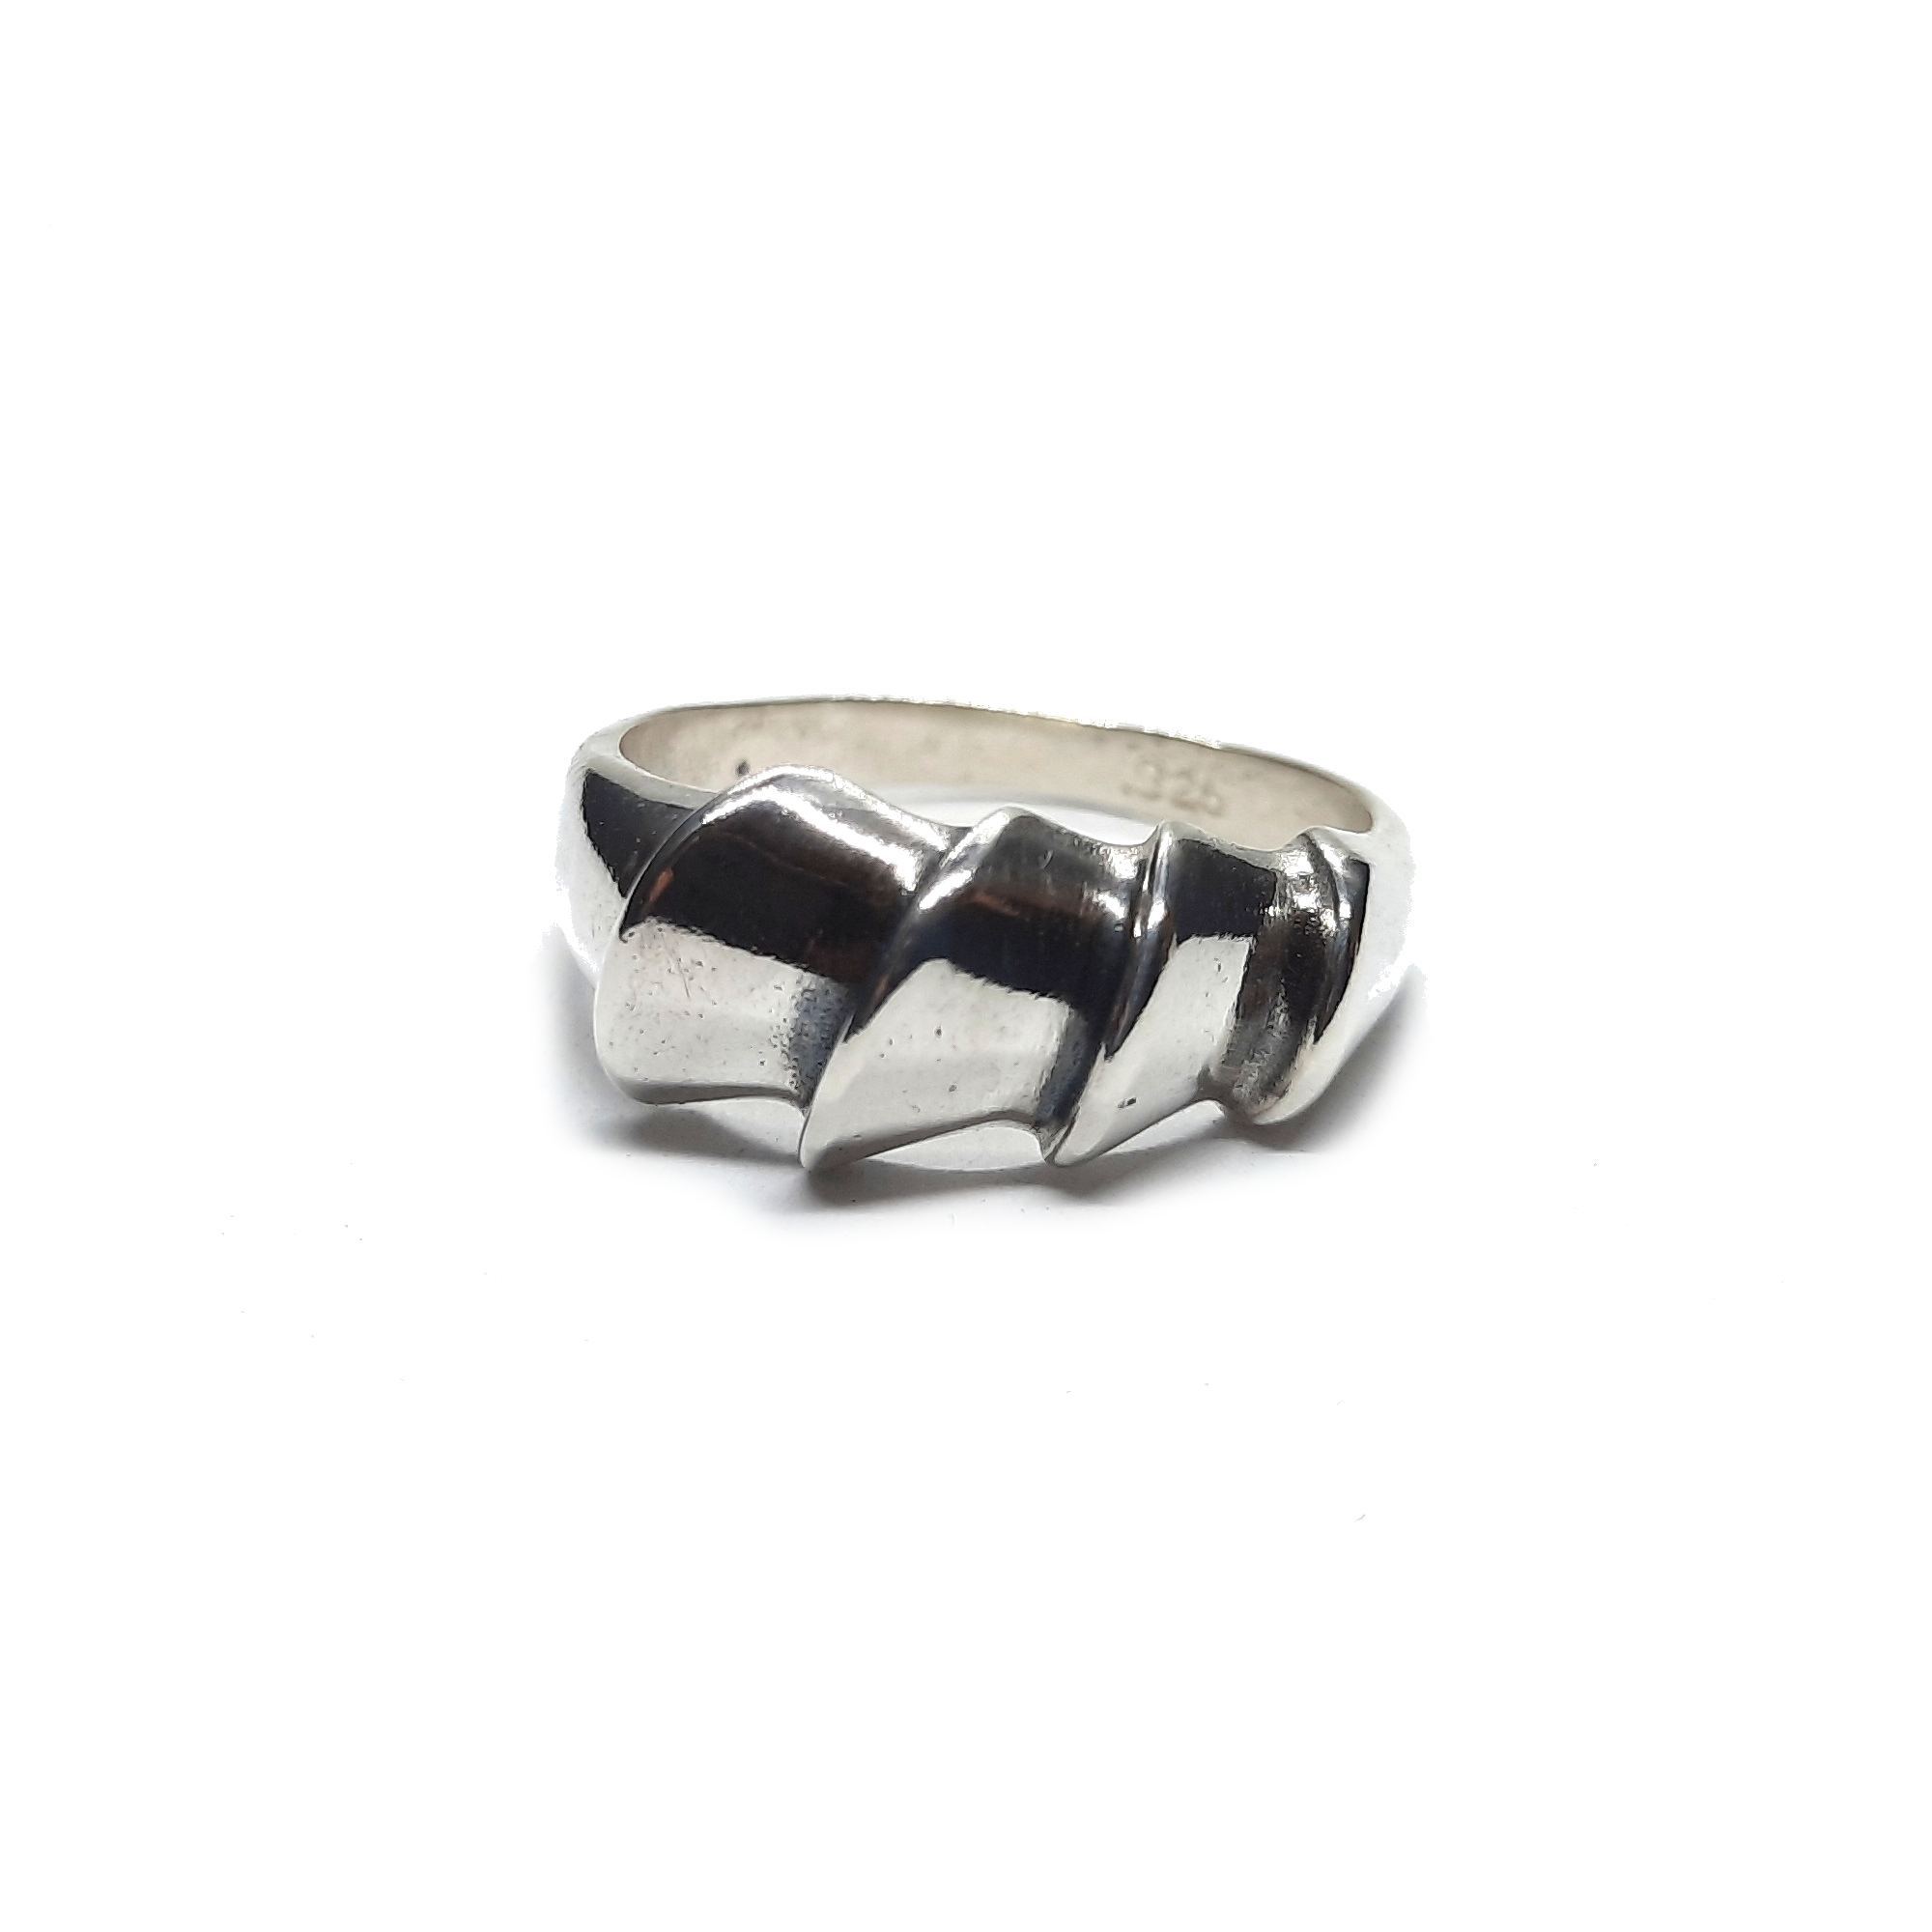 Silver ring - R002213